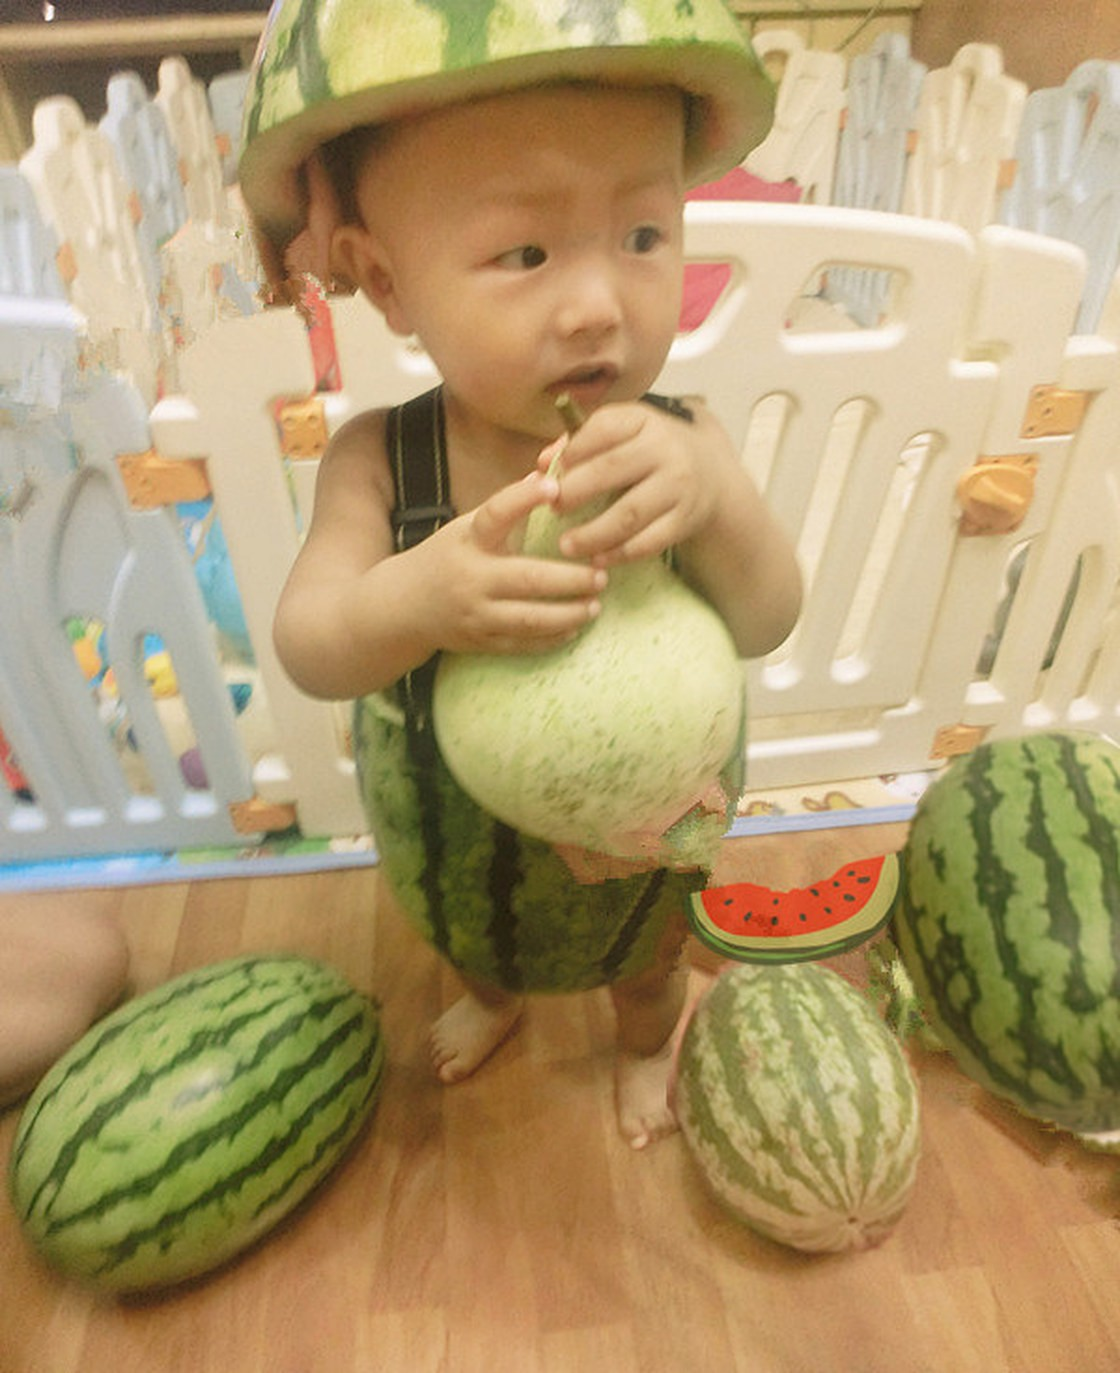 Cooling off with watermelon …